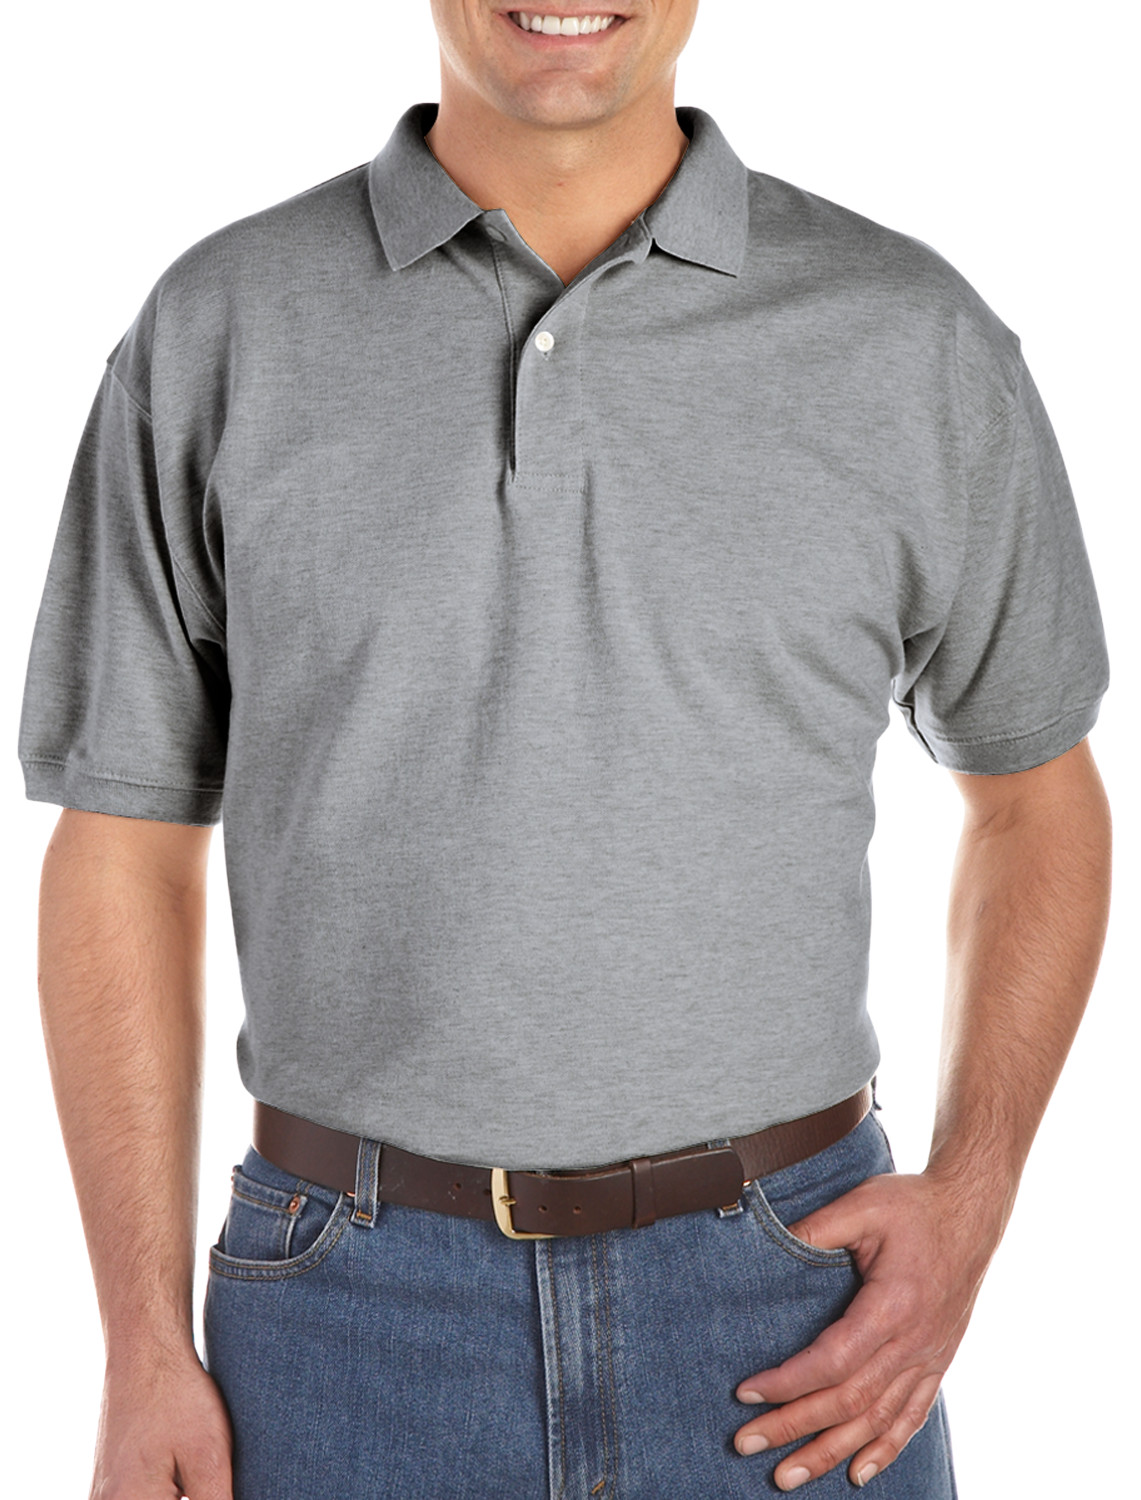 Casual Male XL is the biggest specialty retailer of big and tall men's apparel in the United States. They also have operations in London, England. Casual Male XL has its headquarters located in Canton, Massachusetts, and operates both an ecommerce business and retail stores as well.